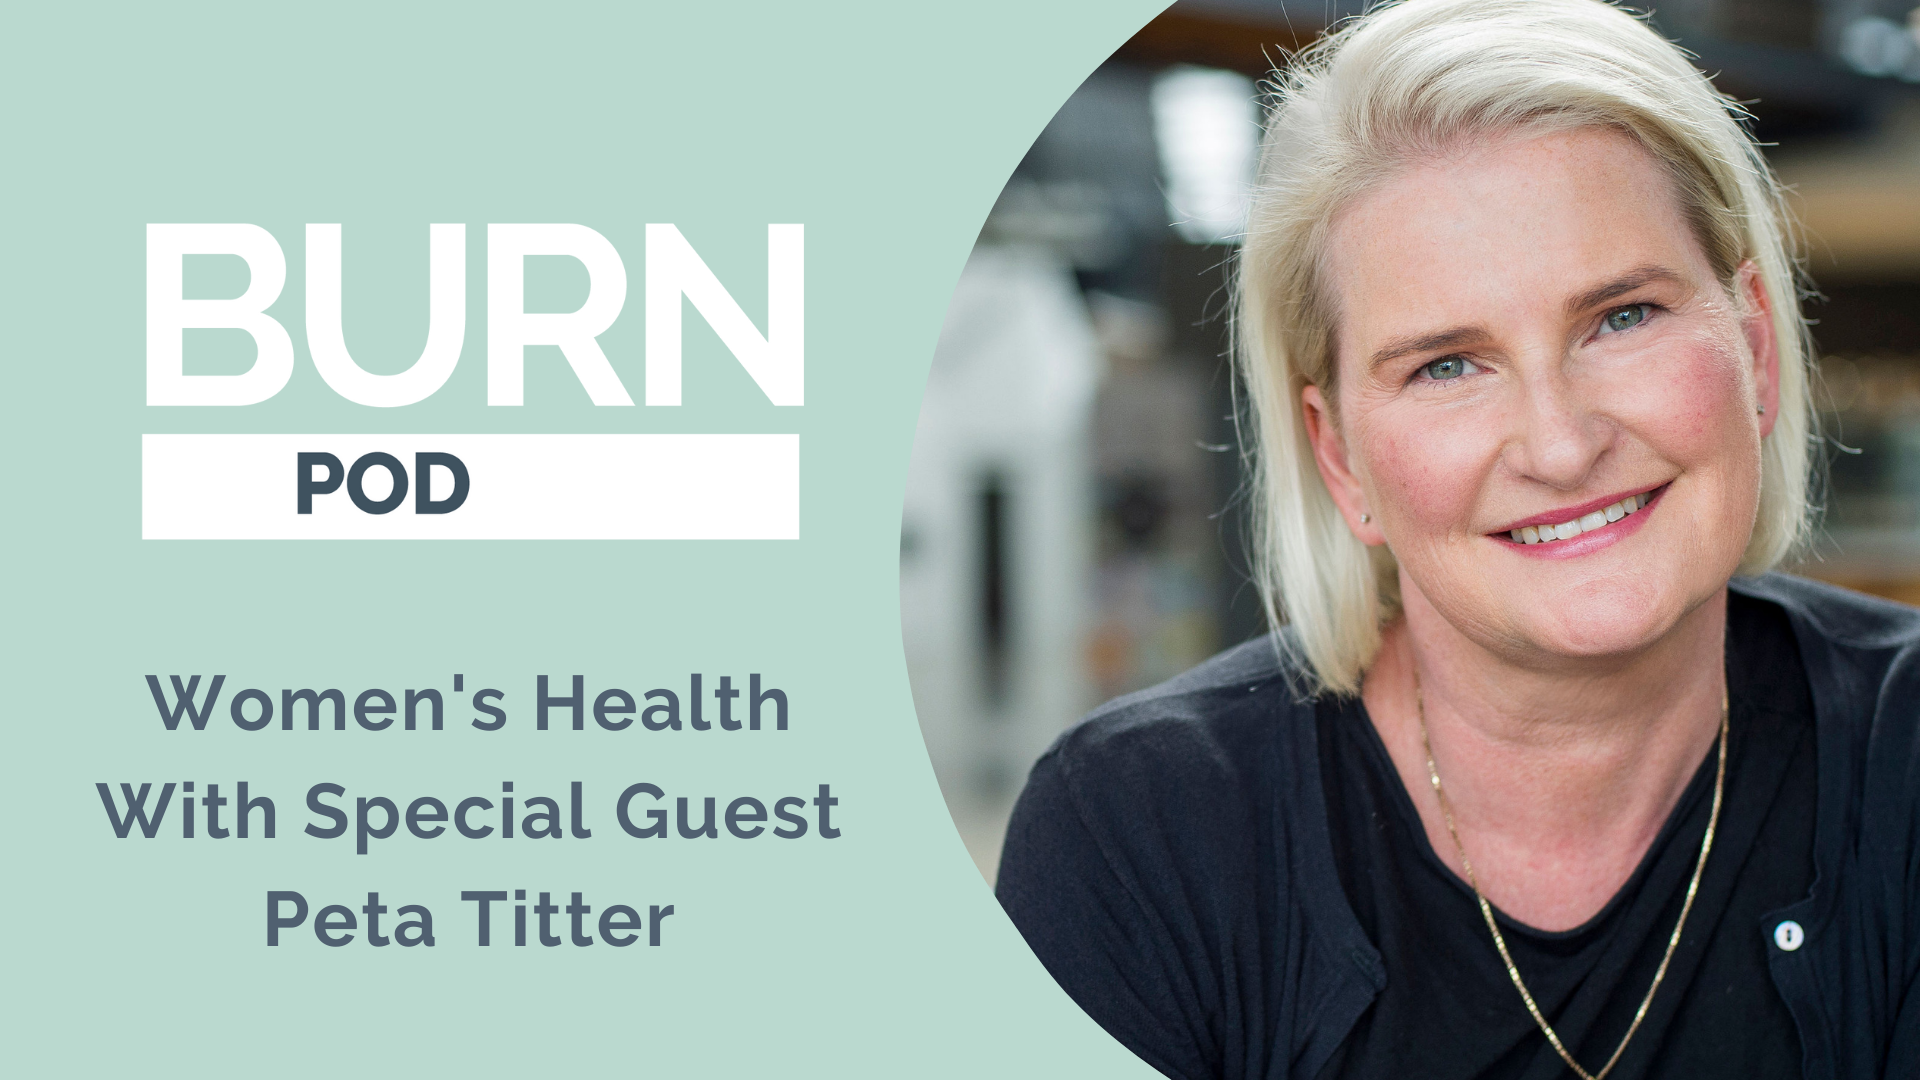 Episode 19: Women's Health With Special Guest Peta Titter – WHEN founder and Head of Health Education